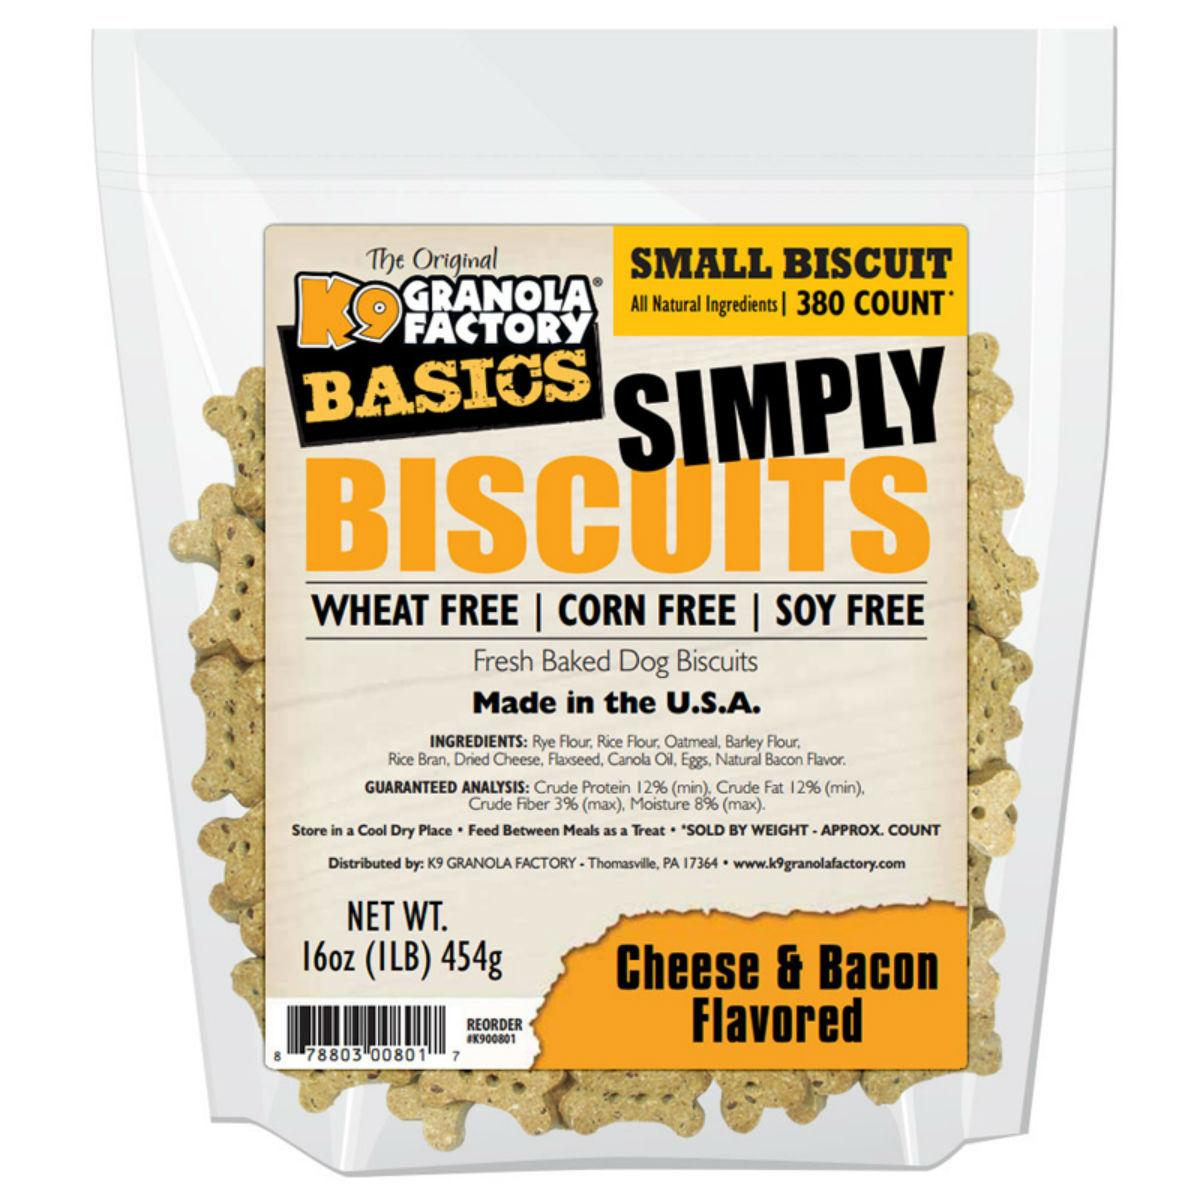 K9 Granola Factory Simply Biscuits Dog Treats - Cheese & Bacon